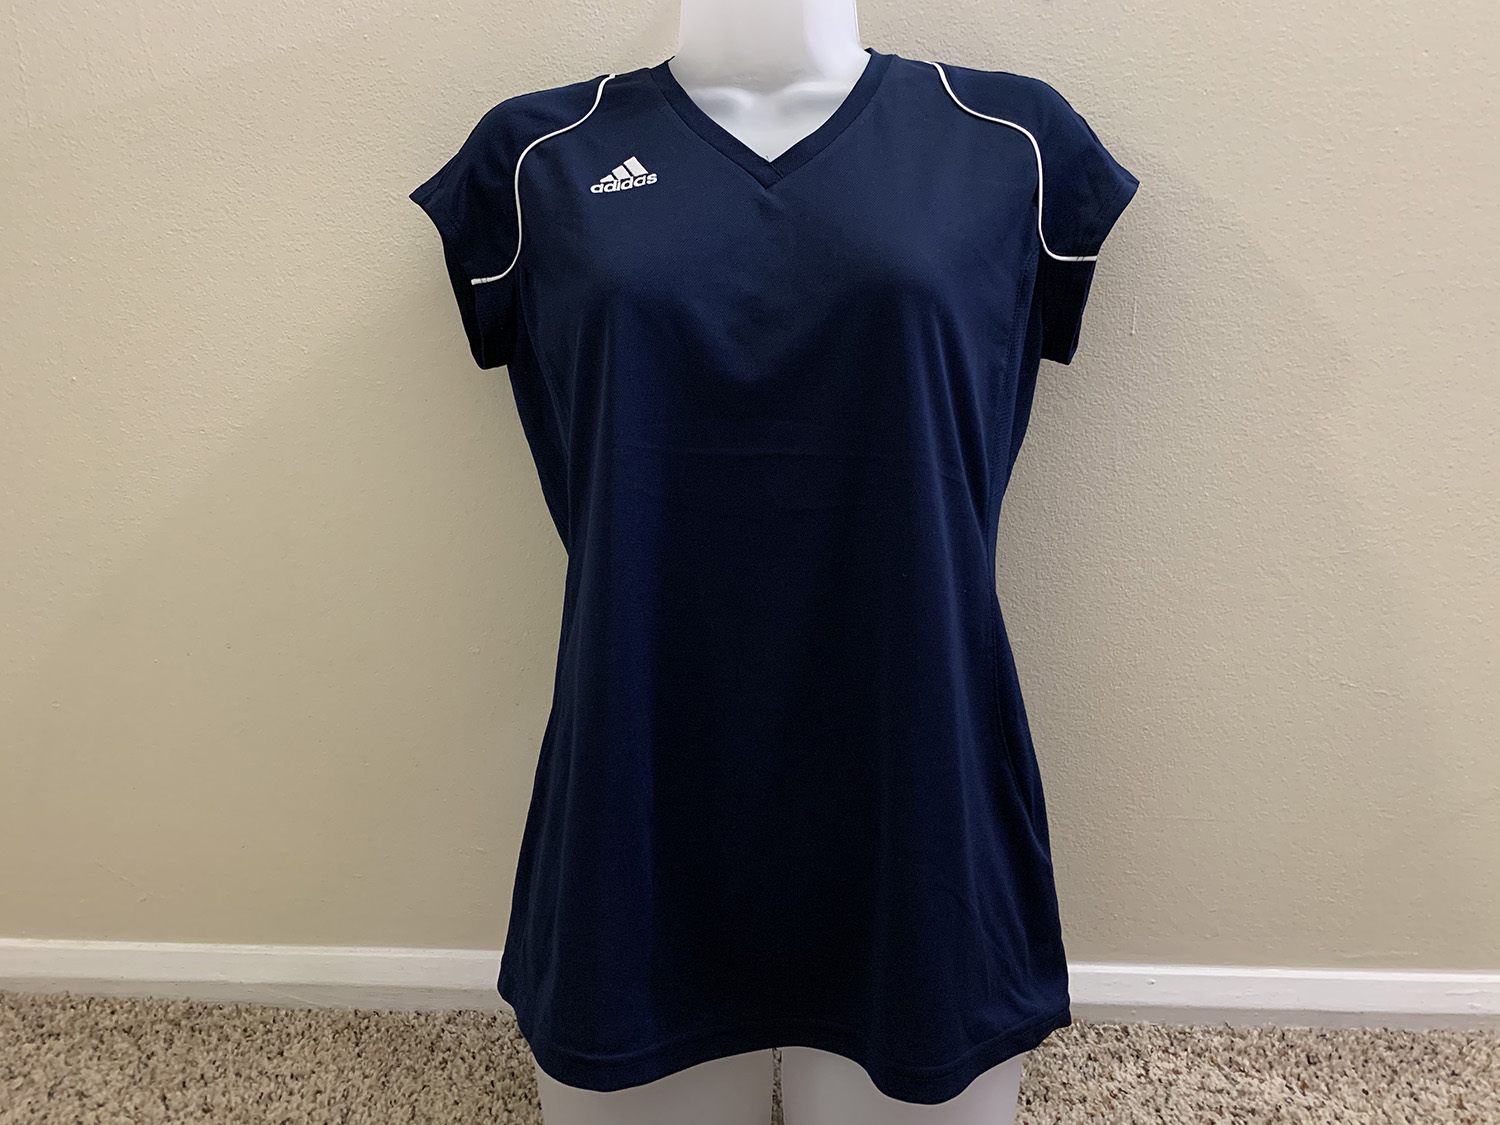 Adidas Womens Team Performance Navy Short Sleeve V Neck Shirt S